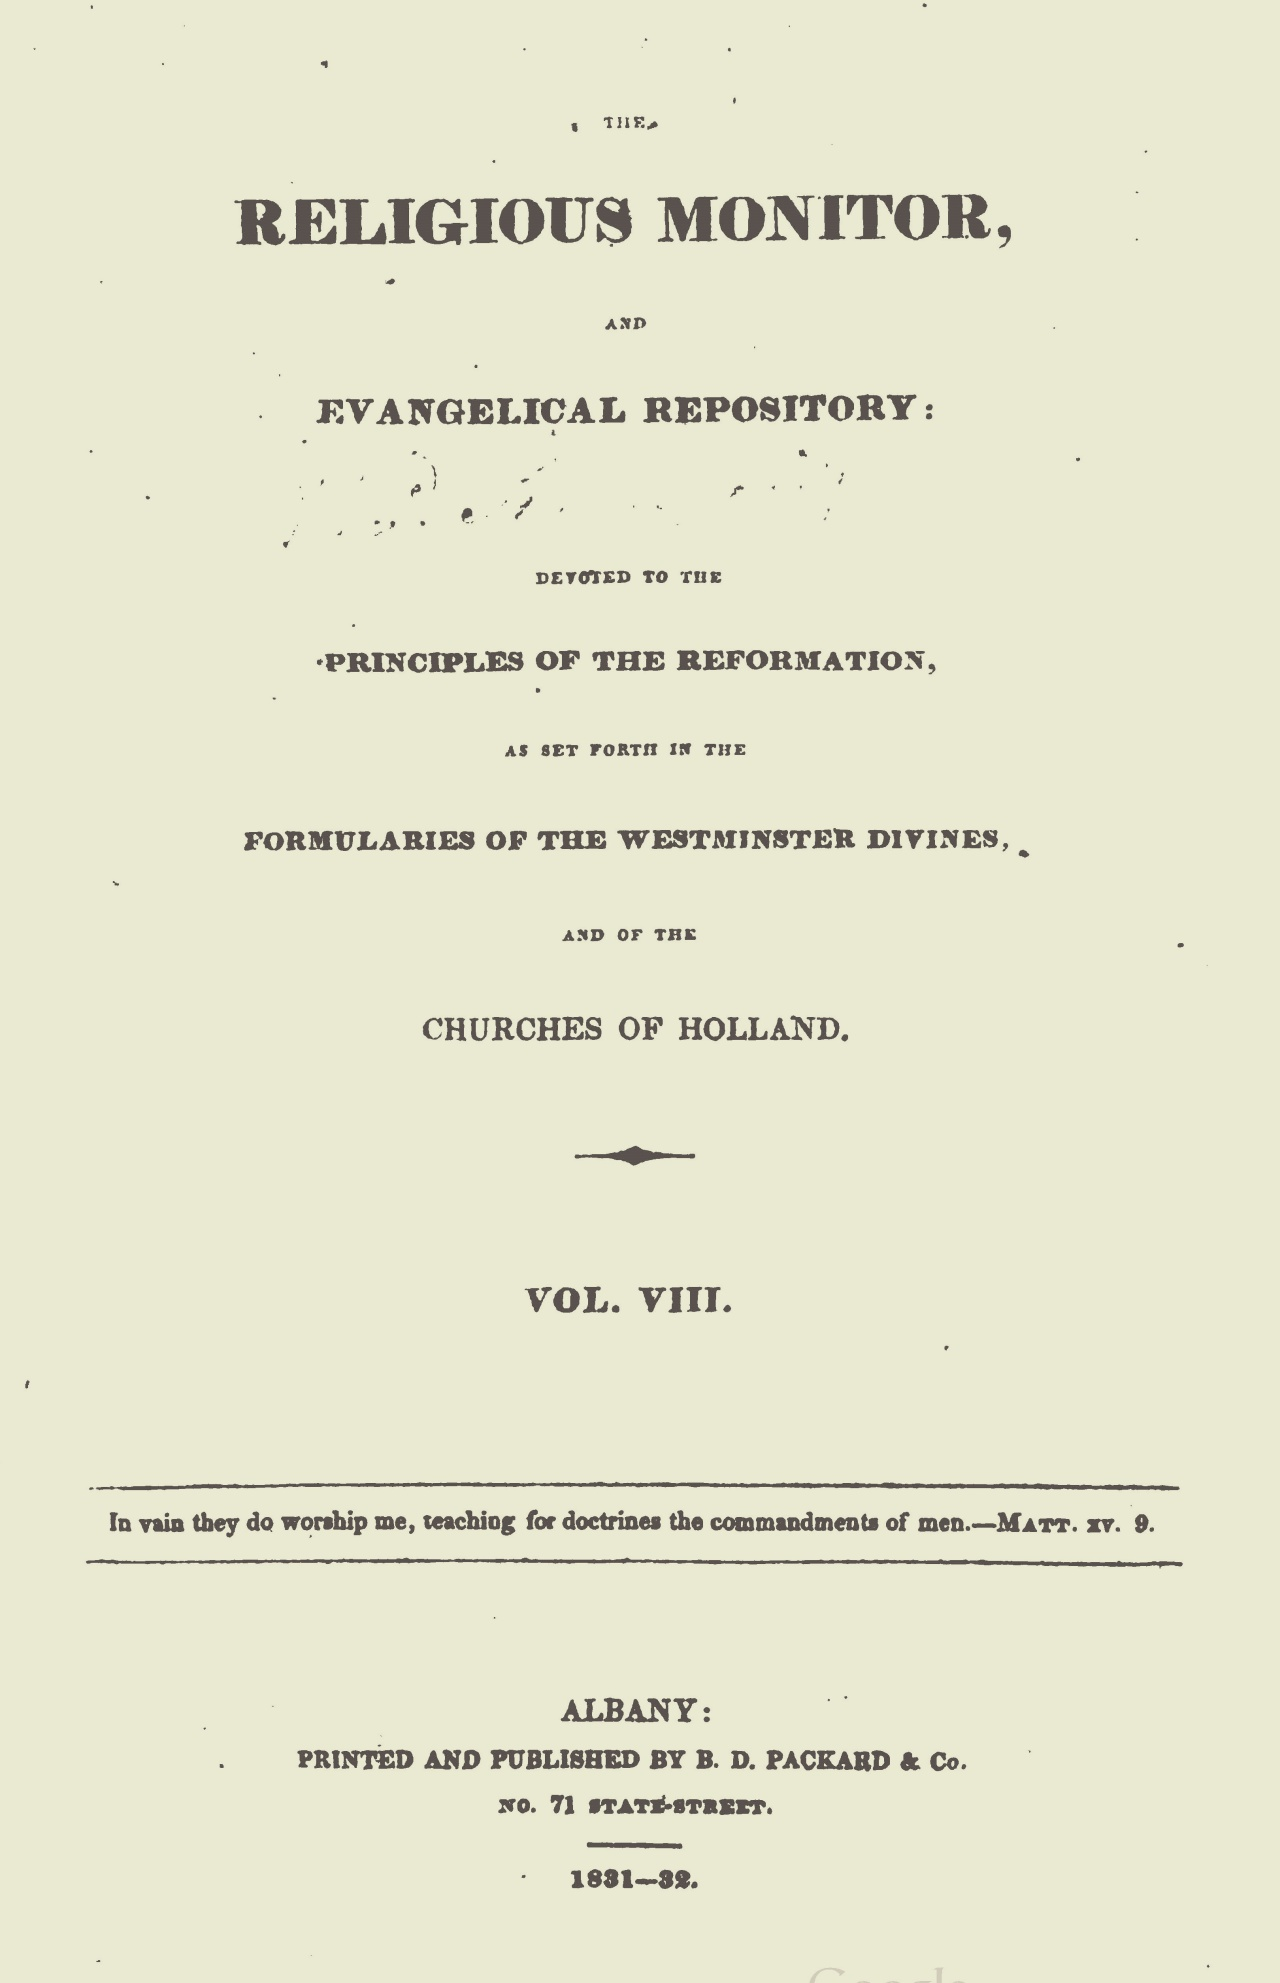 Webster, Chauncey, The Religious Monitor, and Evangelical Repository, Vol. 8 Title Page.jpg